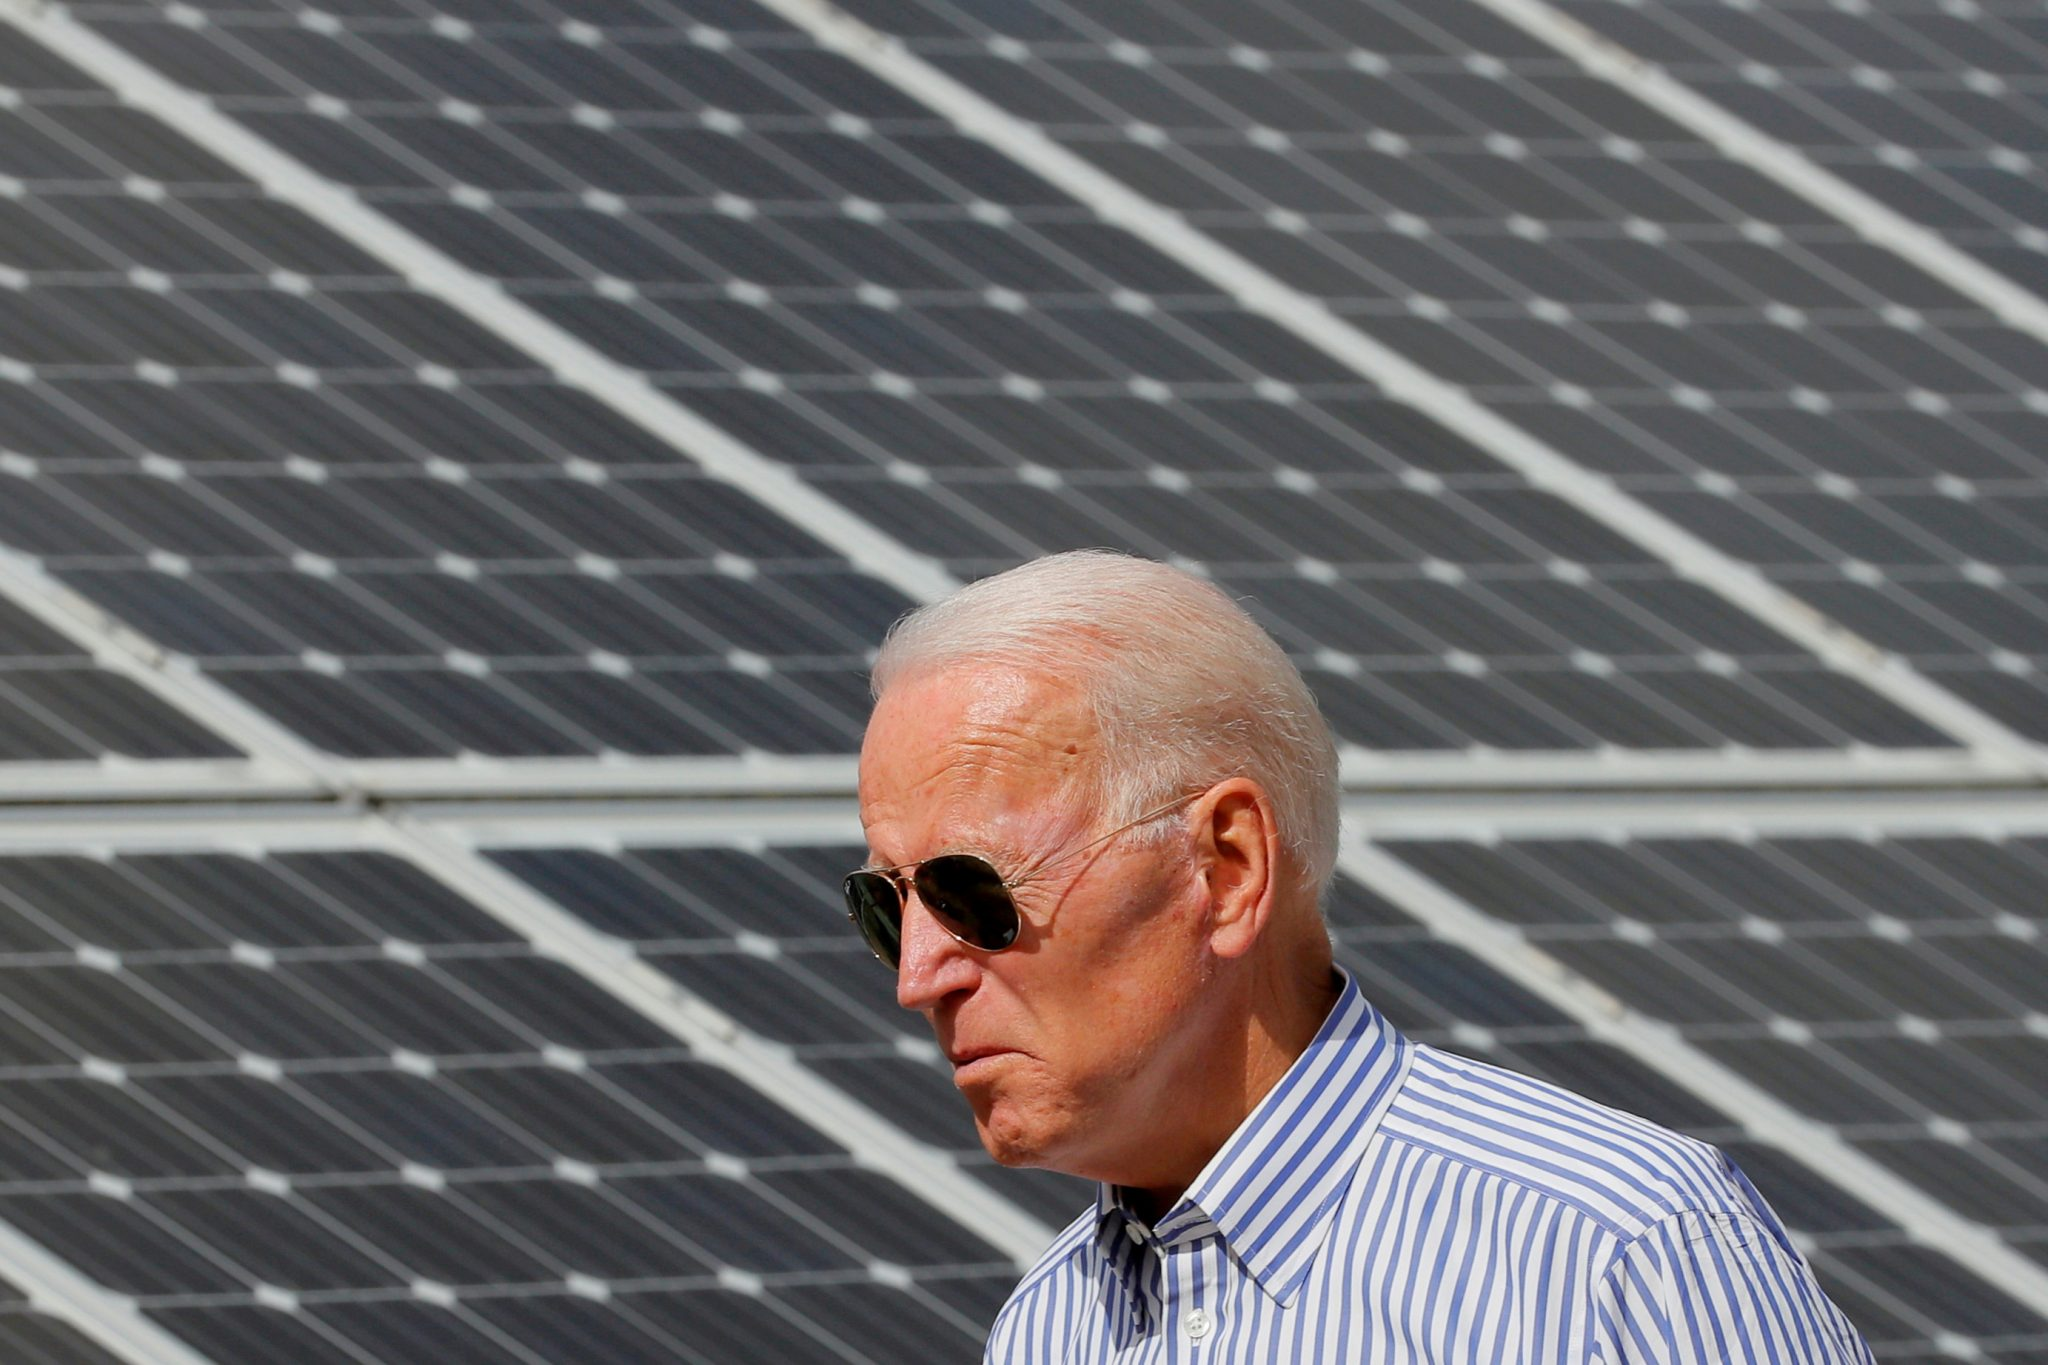 Biden's climate leadership hinges on mobilising private finance